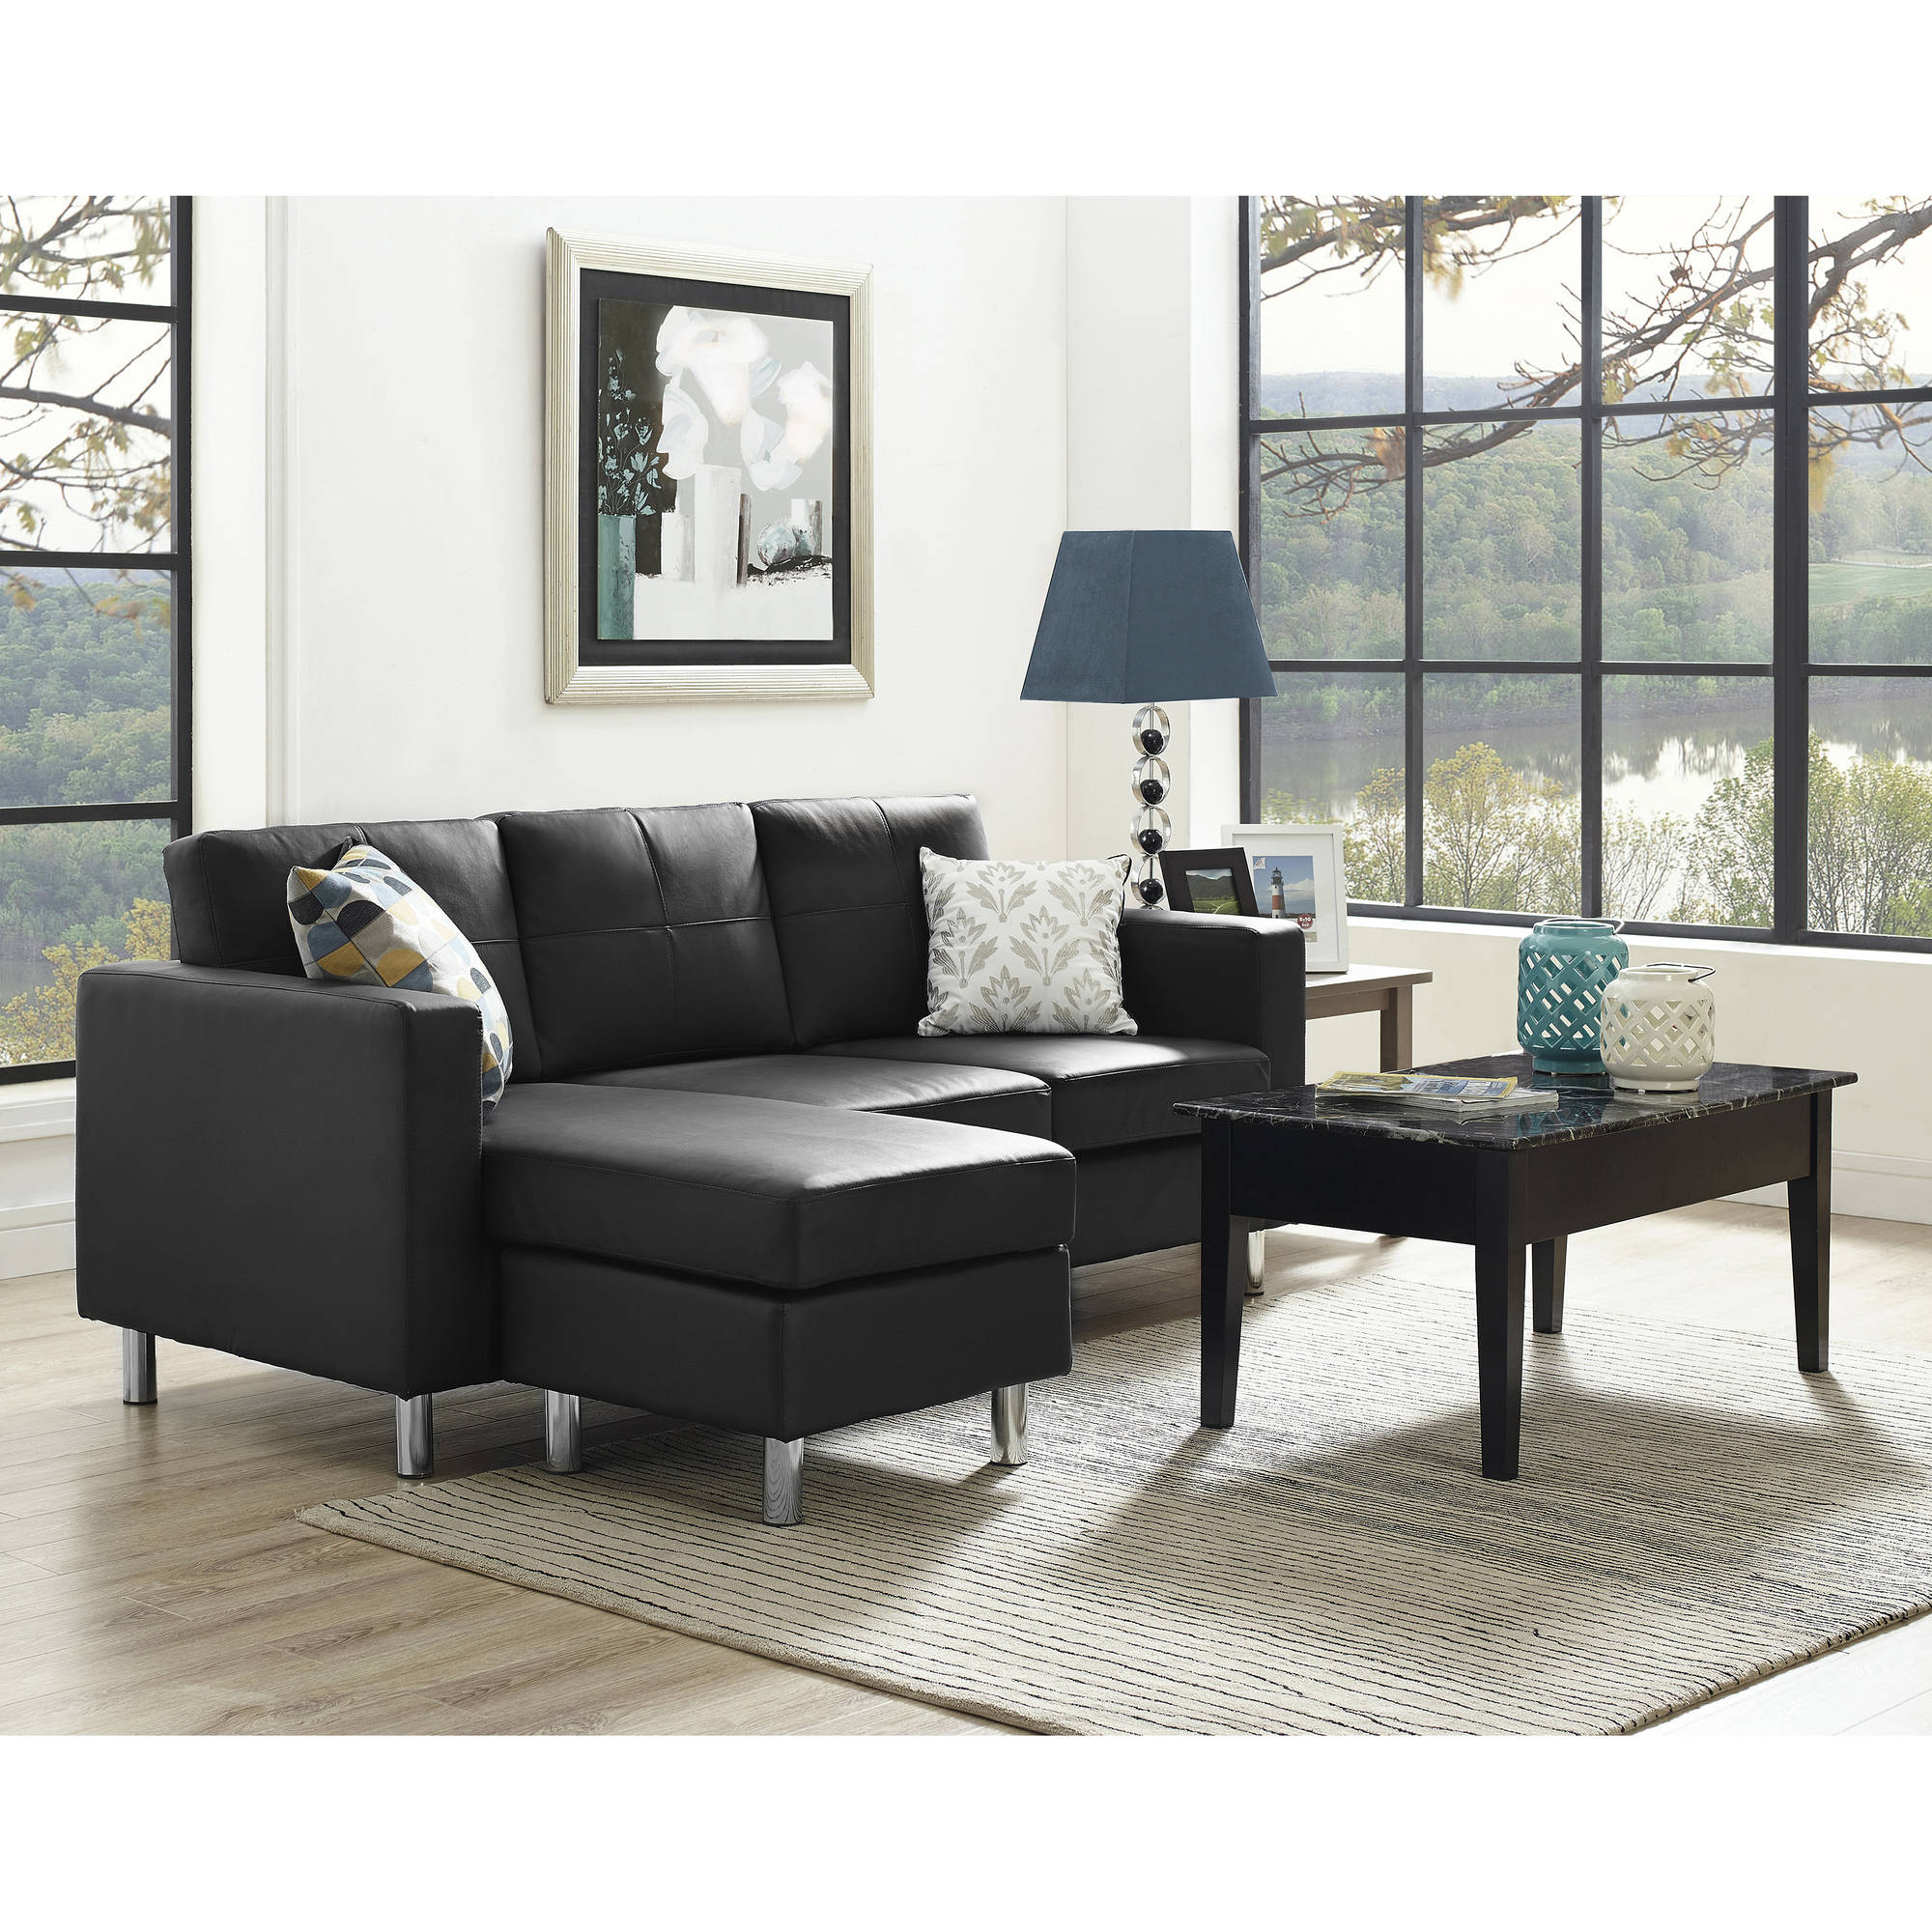 Small Spaces Living Room Value Bundle Walmart with Small Living Room Sets